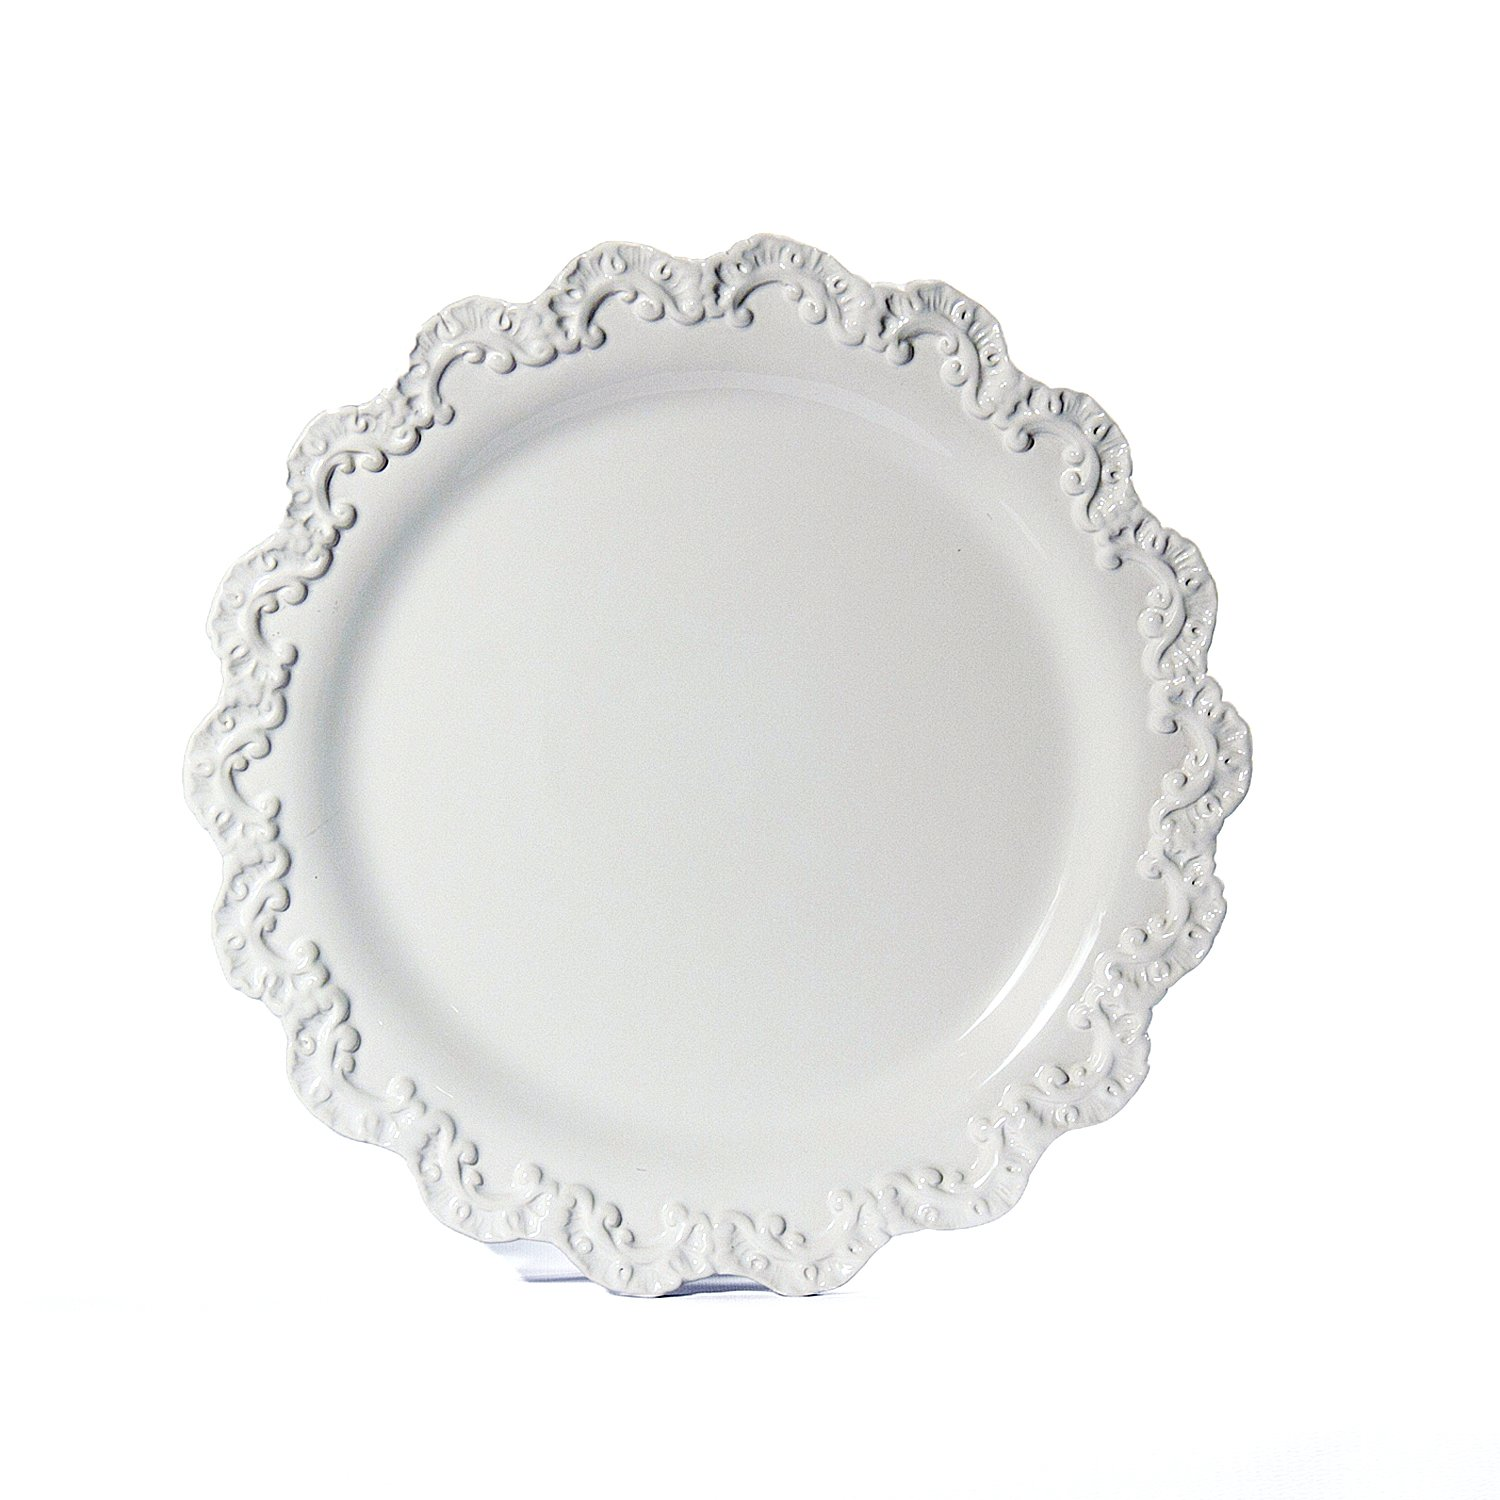 Christmas Tablescape Décor - White Baroque Charger Plate by Intrada